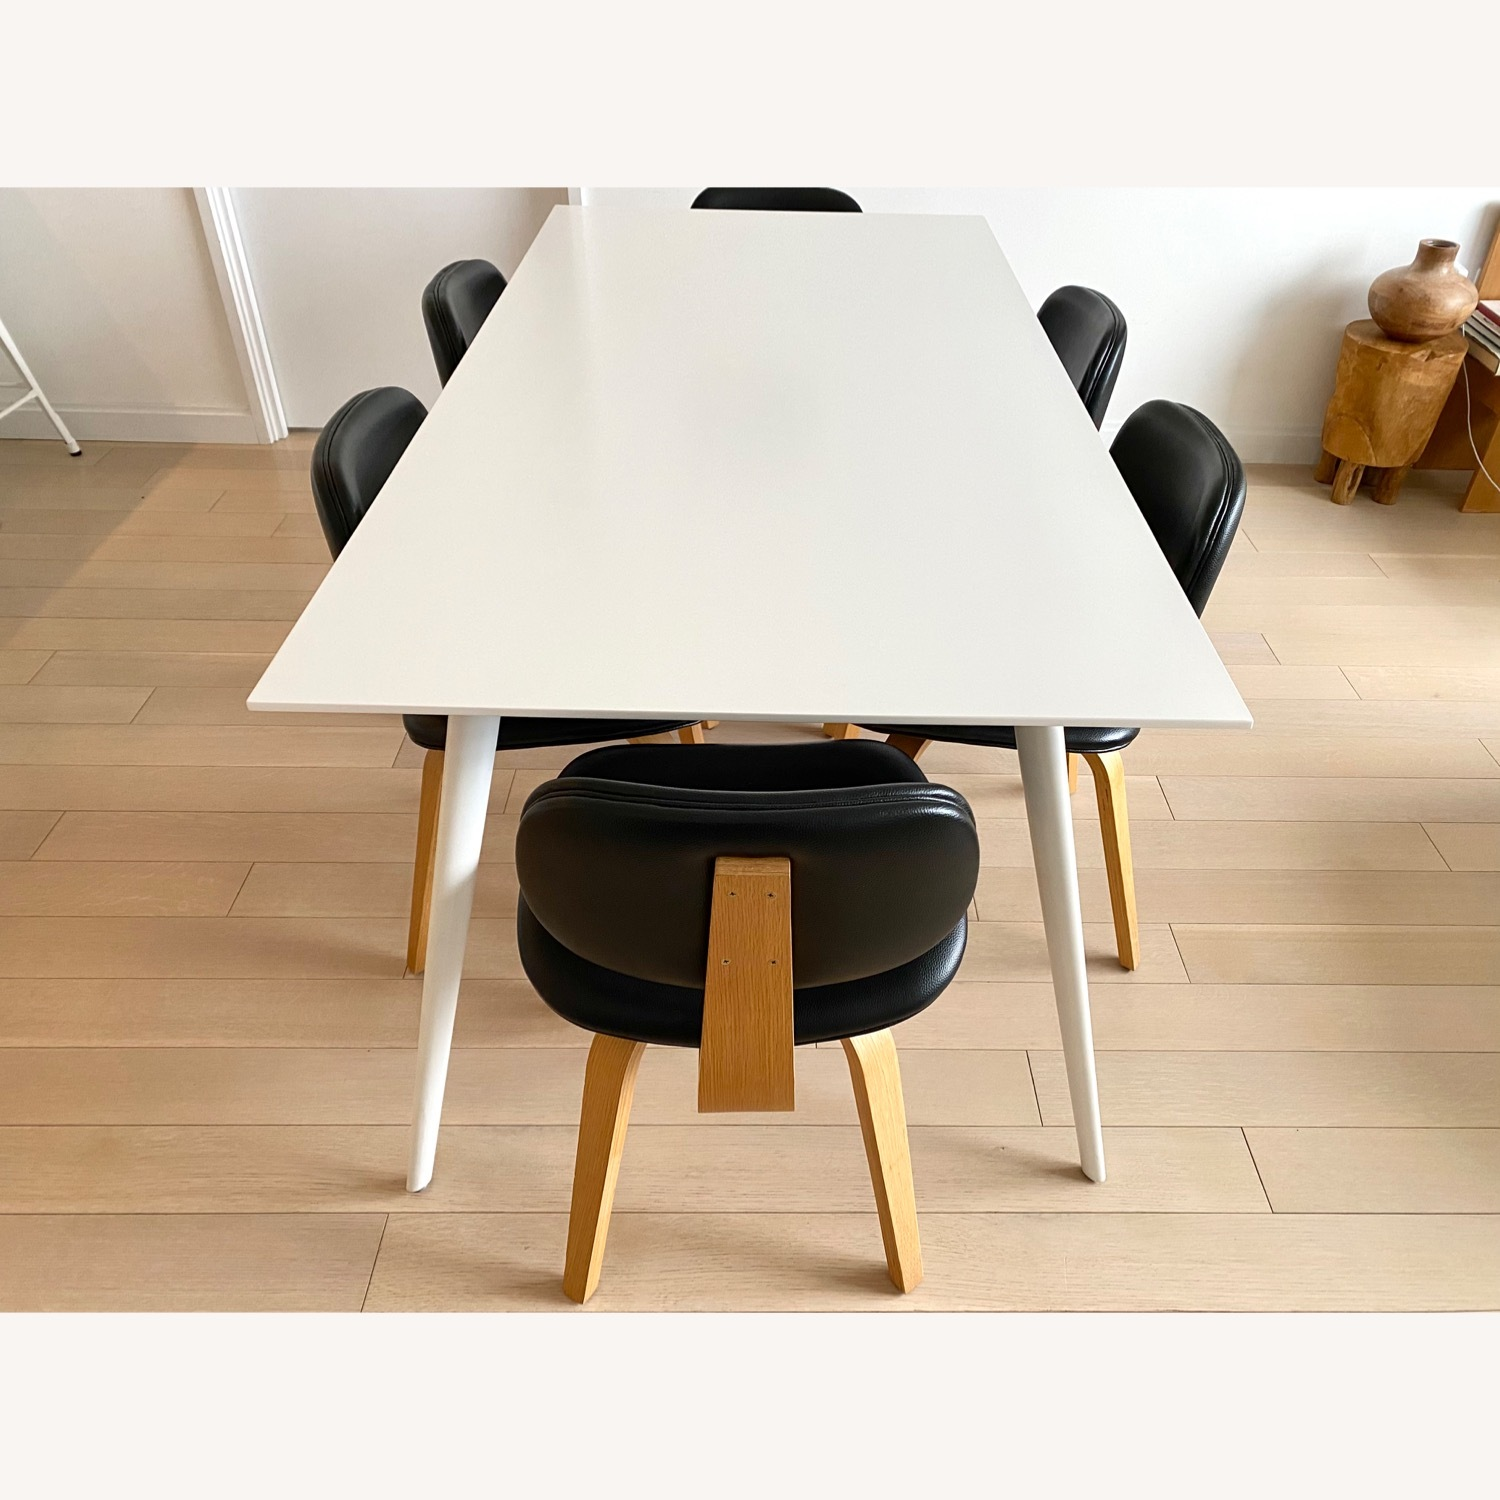 ABC Home White Modern Dining Table - image-5